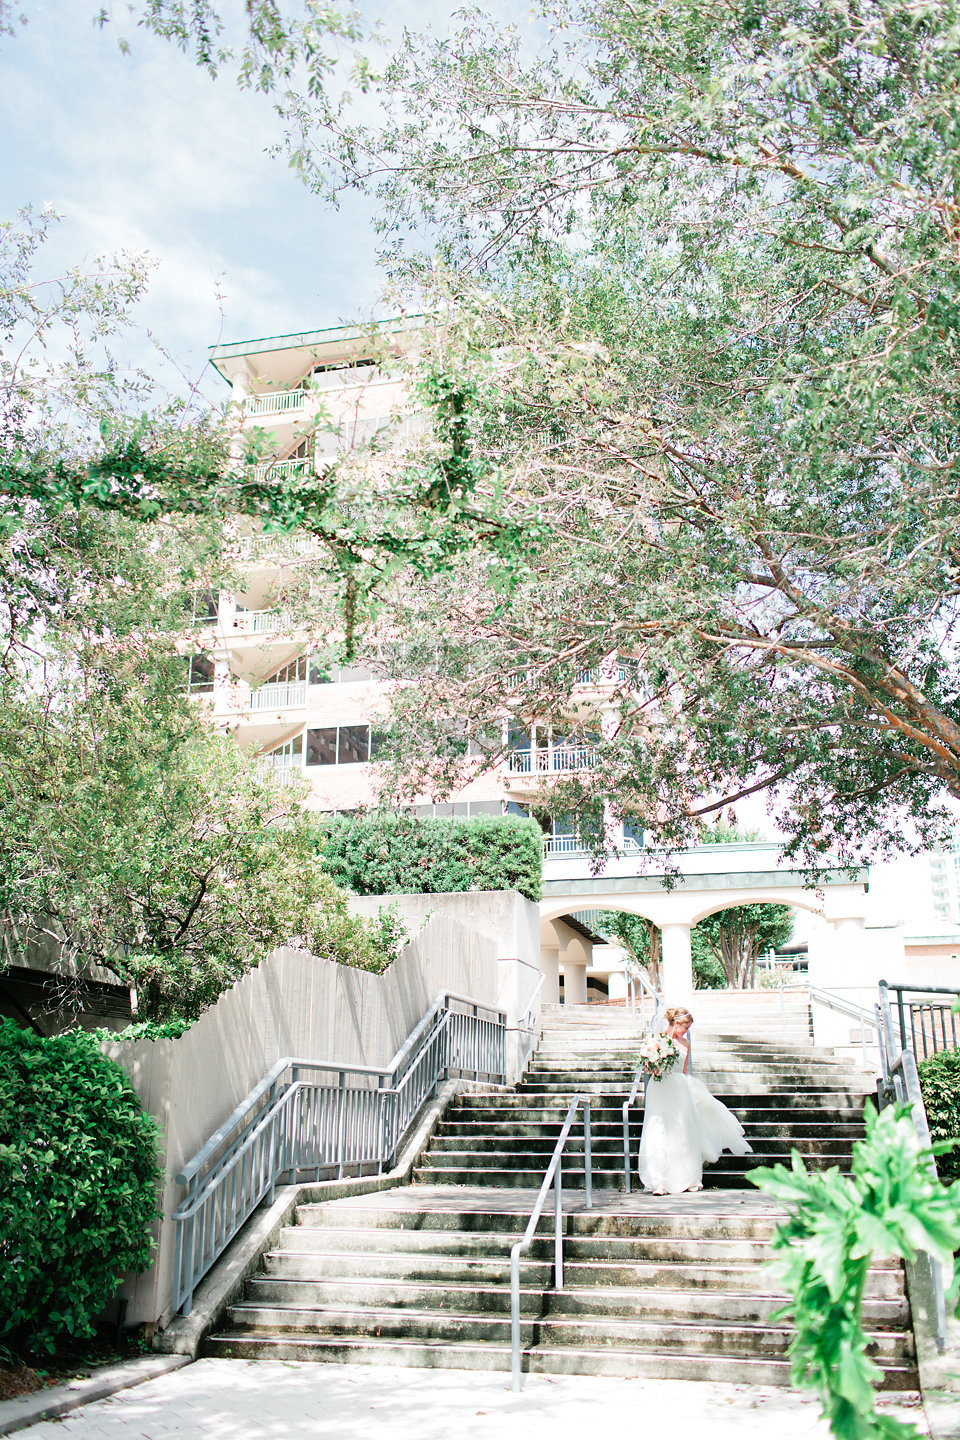 The bride and groom shared an intimate first look down a private path at the hotel.